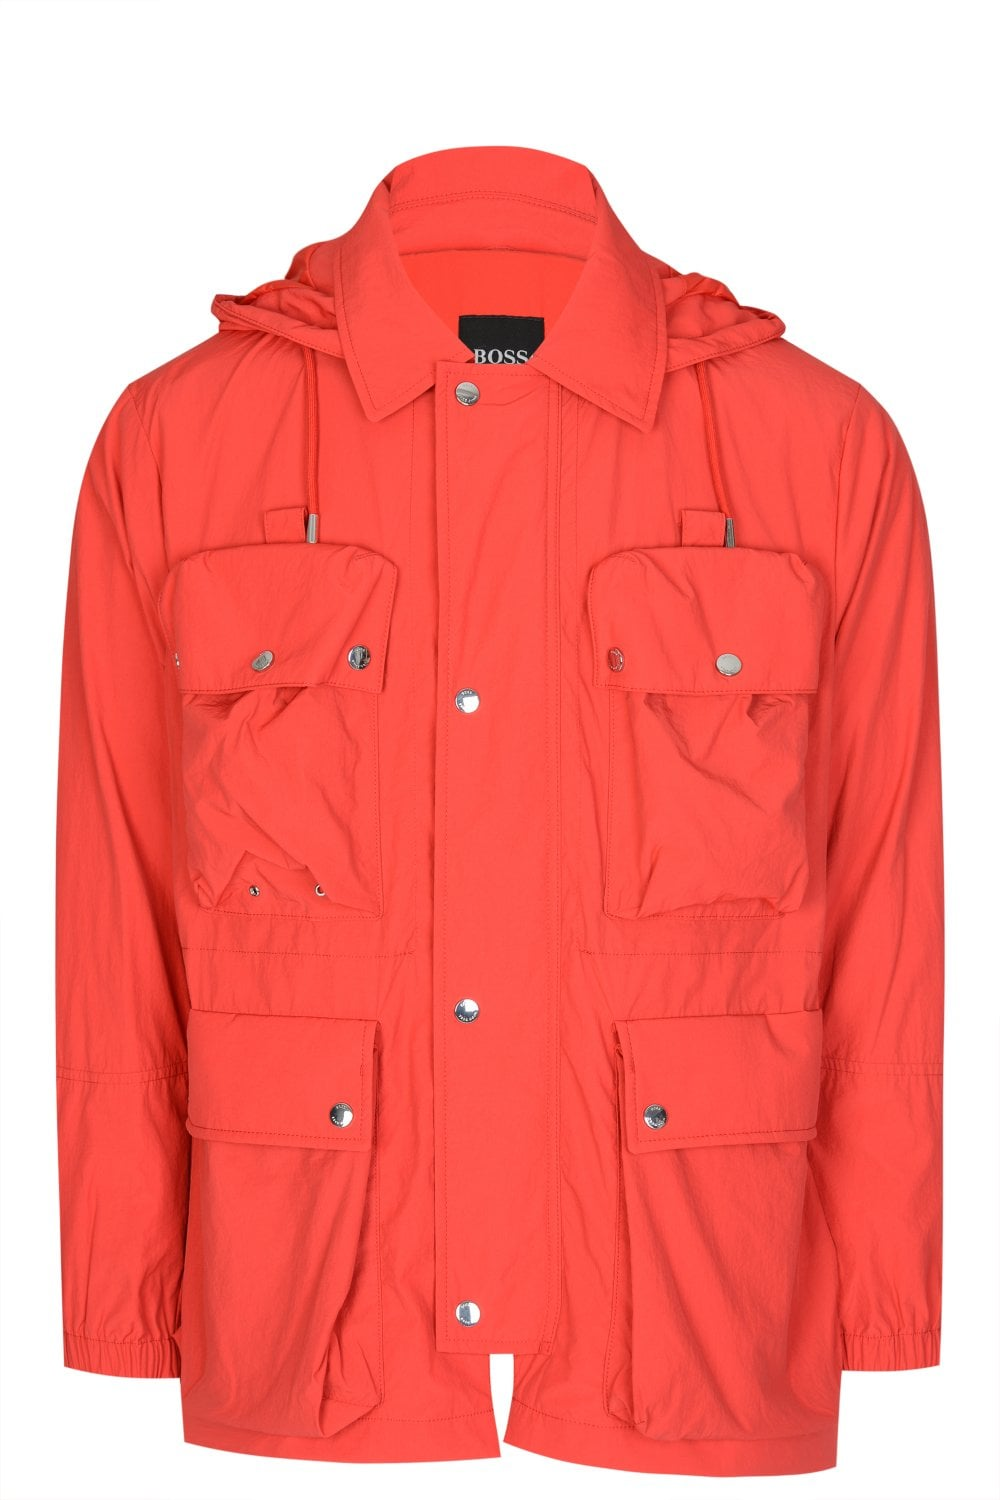 cc949f37f BOSS Hugo Boss Water Repellent Hooded Jacket - Clothing from Circle ...